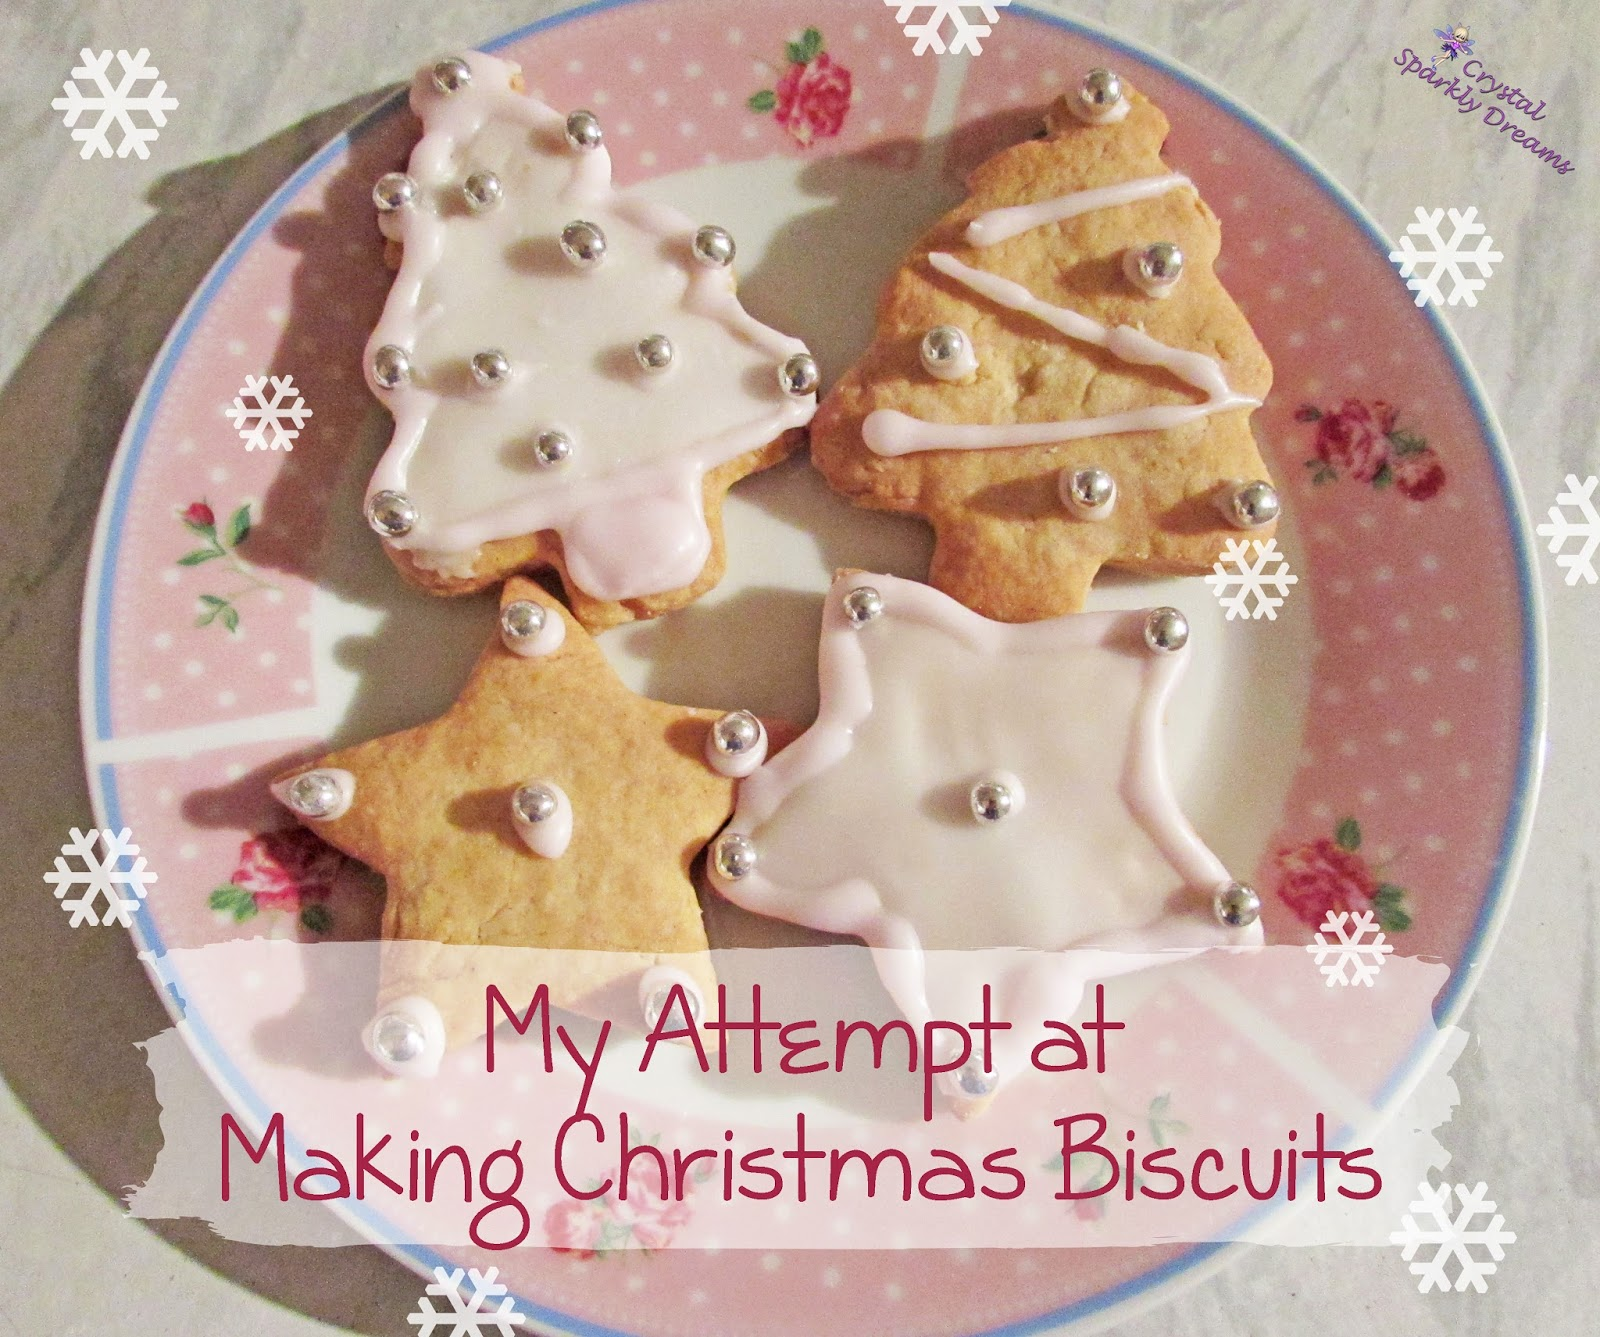 Crystal Sparkly Dreams My Attempt At Making Christmas Biscuits